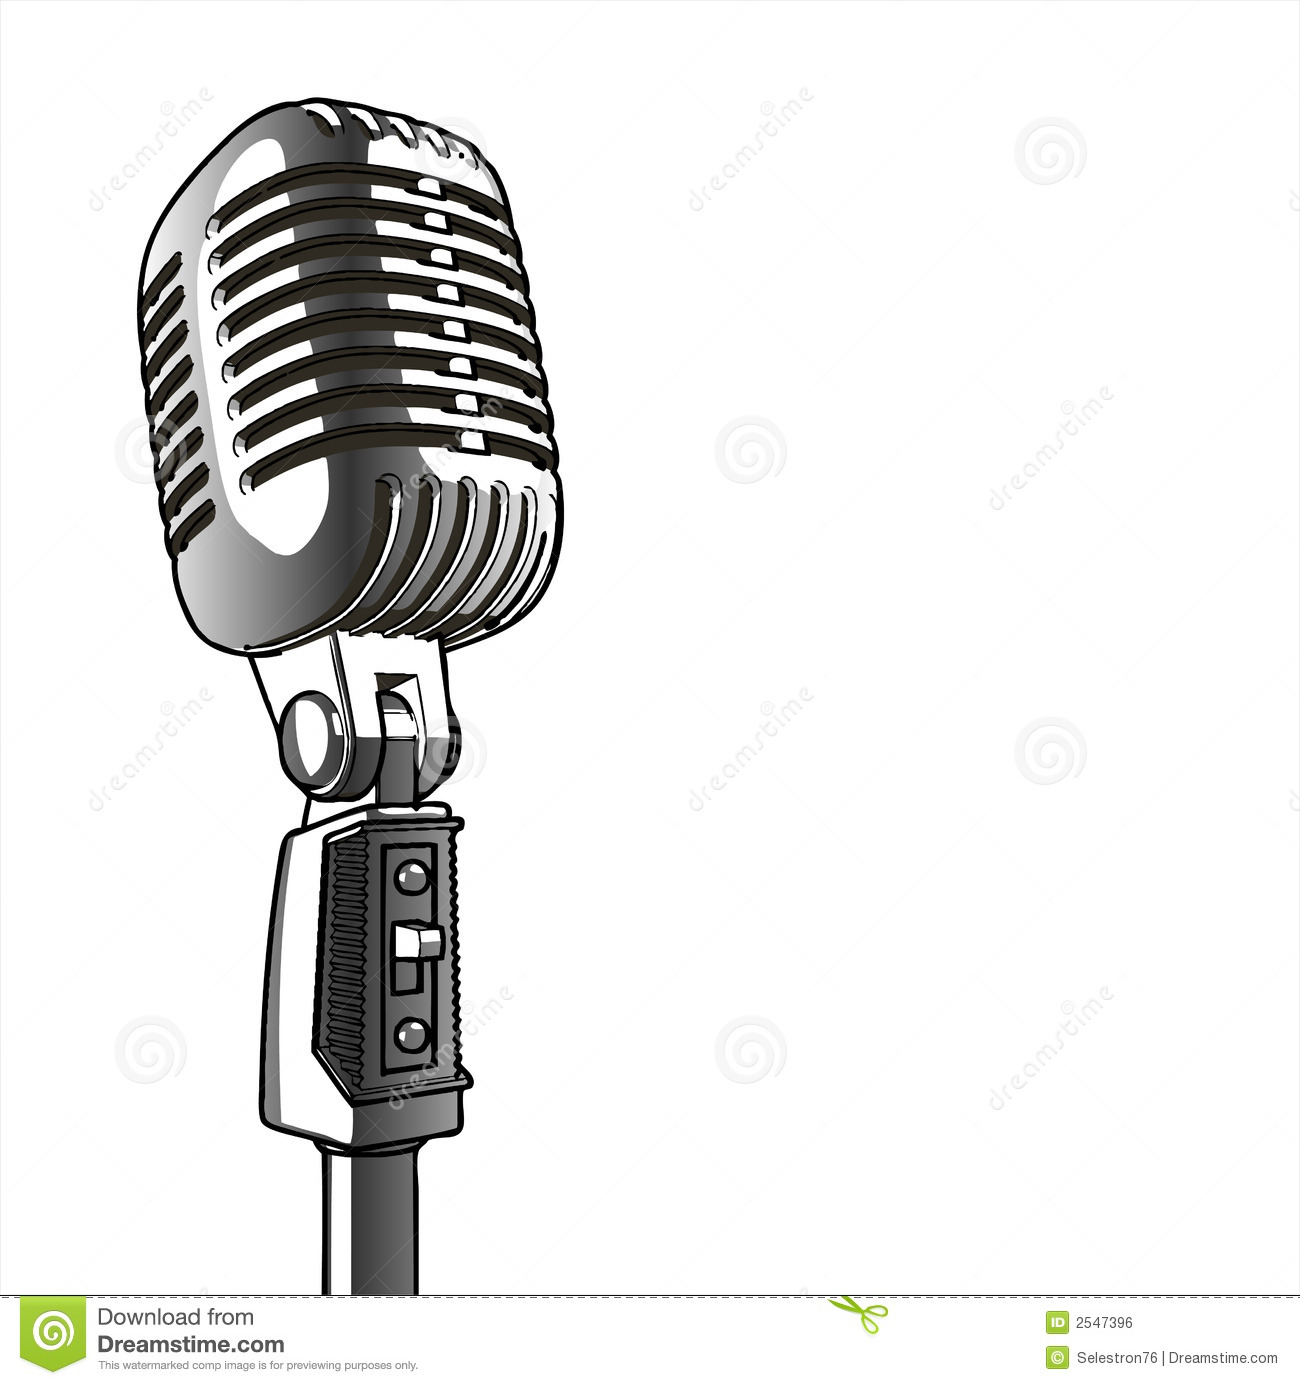 Vintage Microphone   Vector Royalty Free Stock Image   Image  2547396